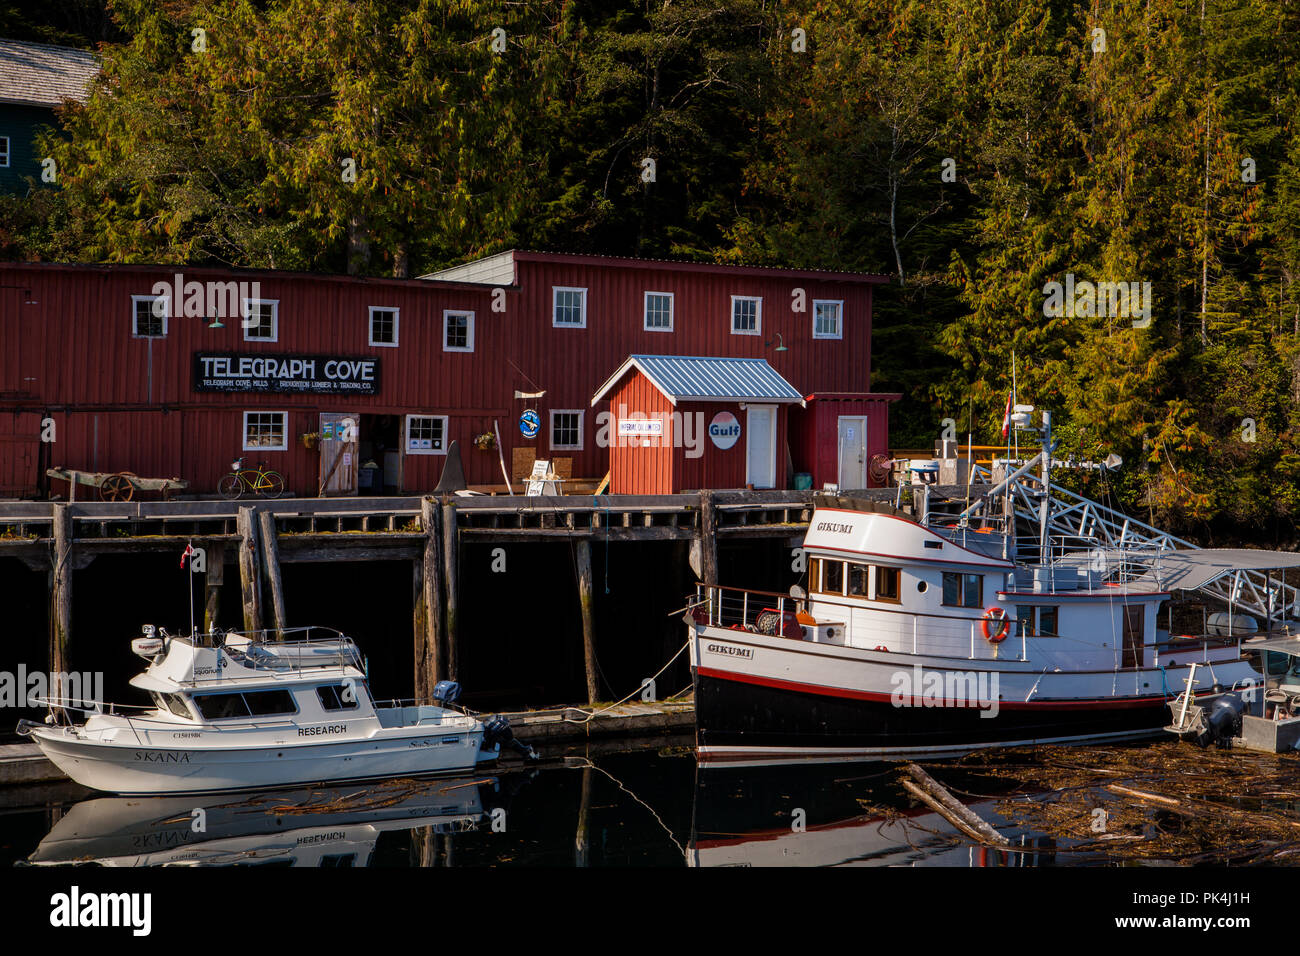 Rundgang durch das idyllische Telegraph Cove Stock Photo